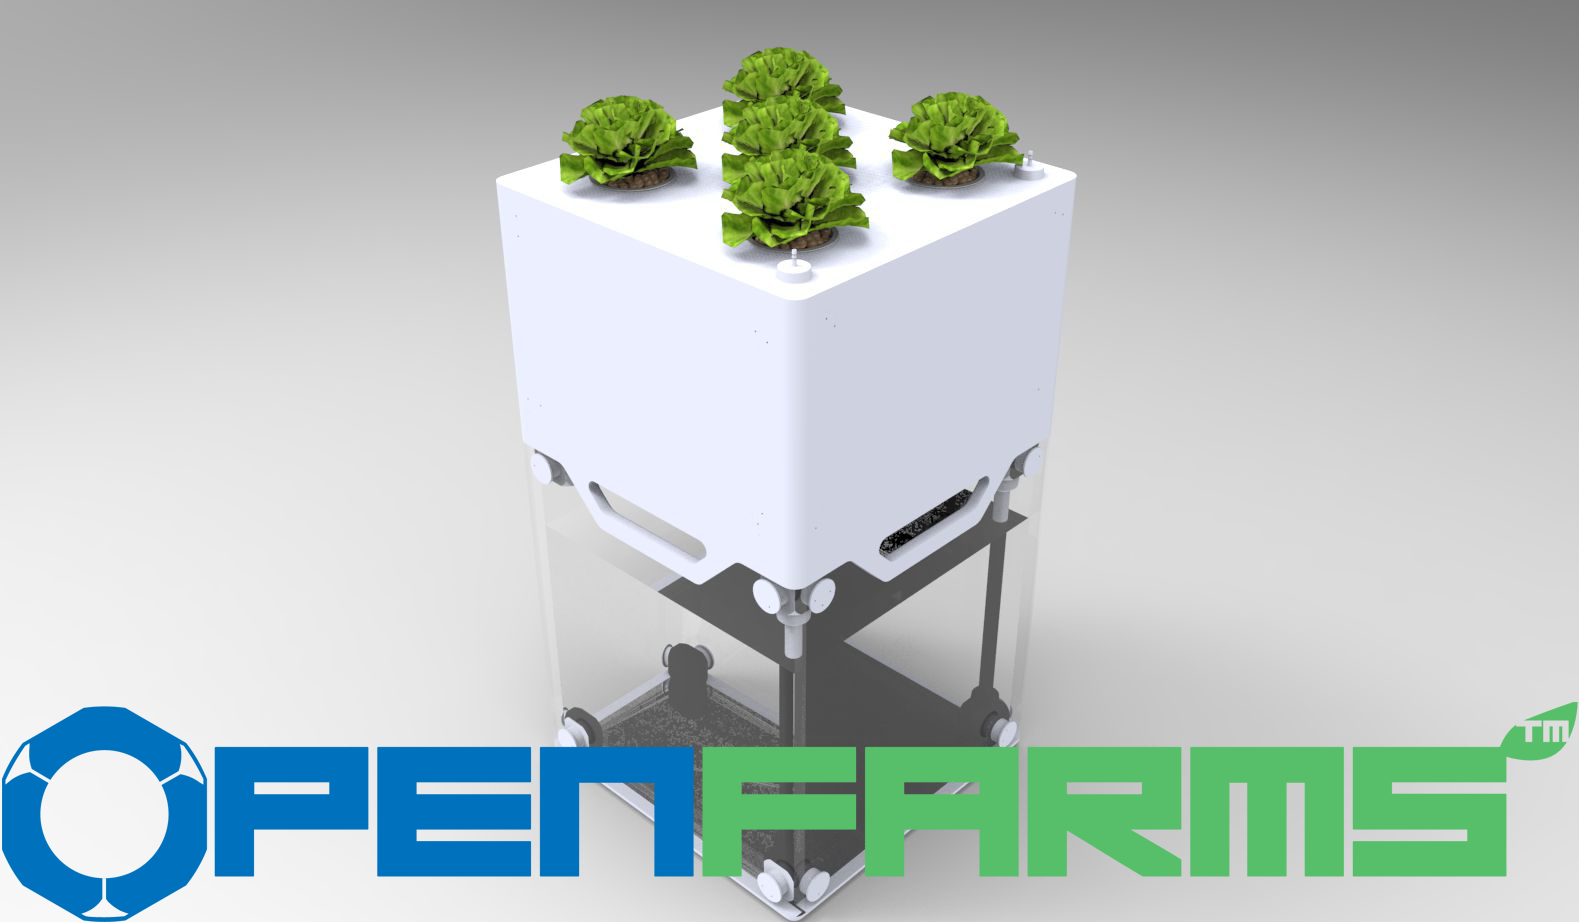 OpenFarms - image 1 - student project